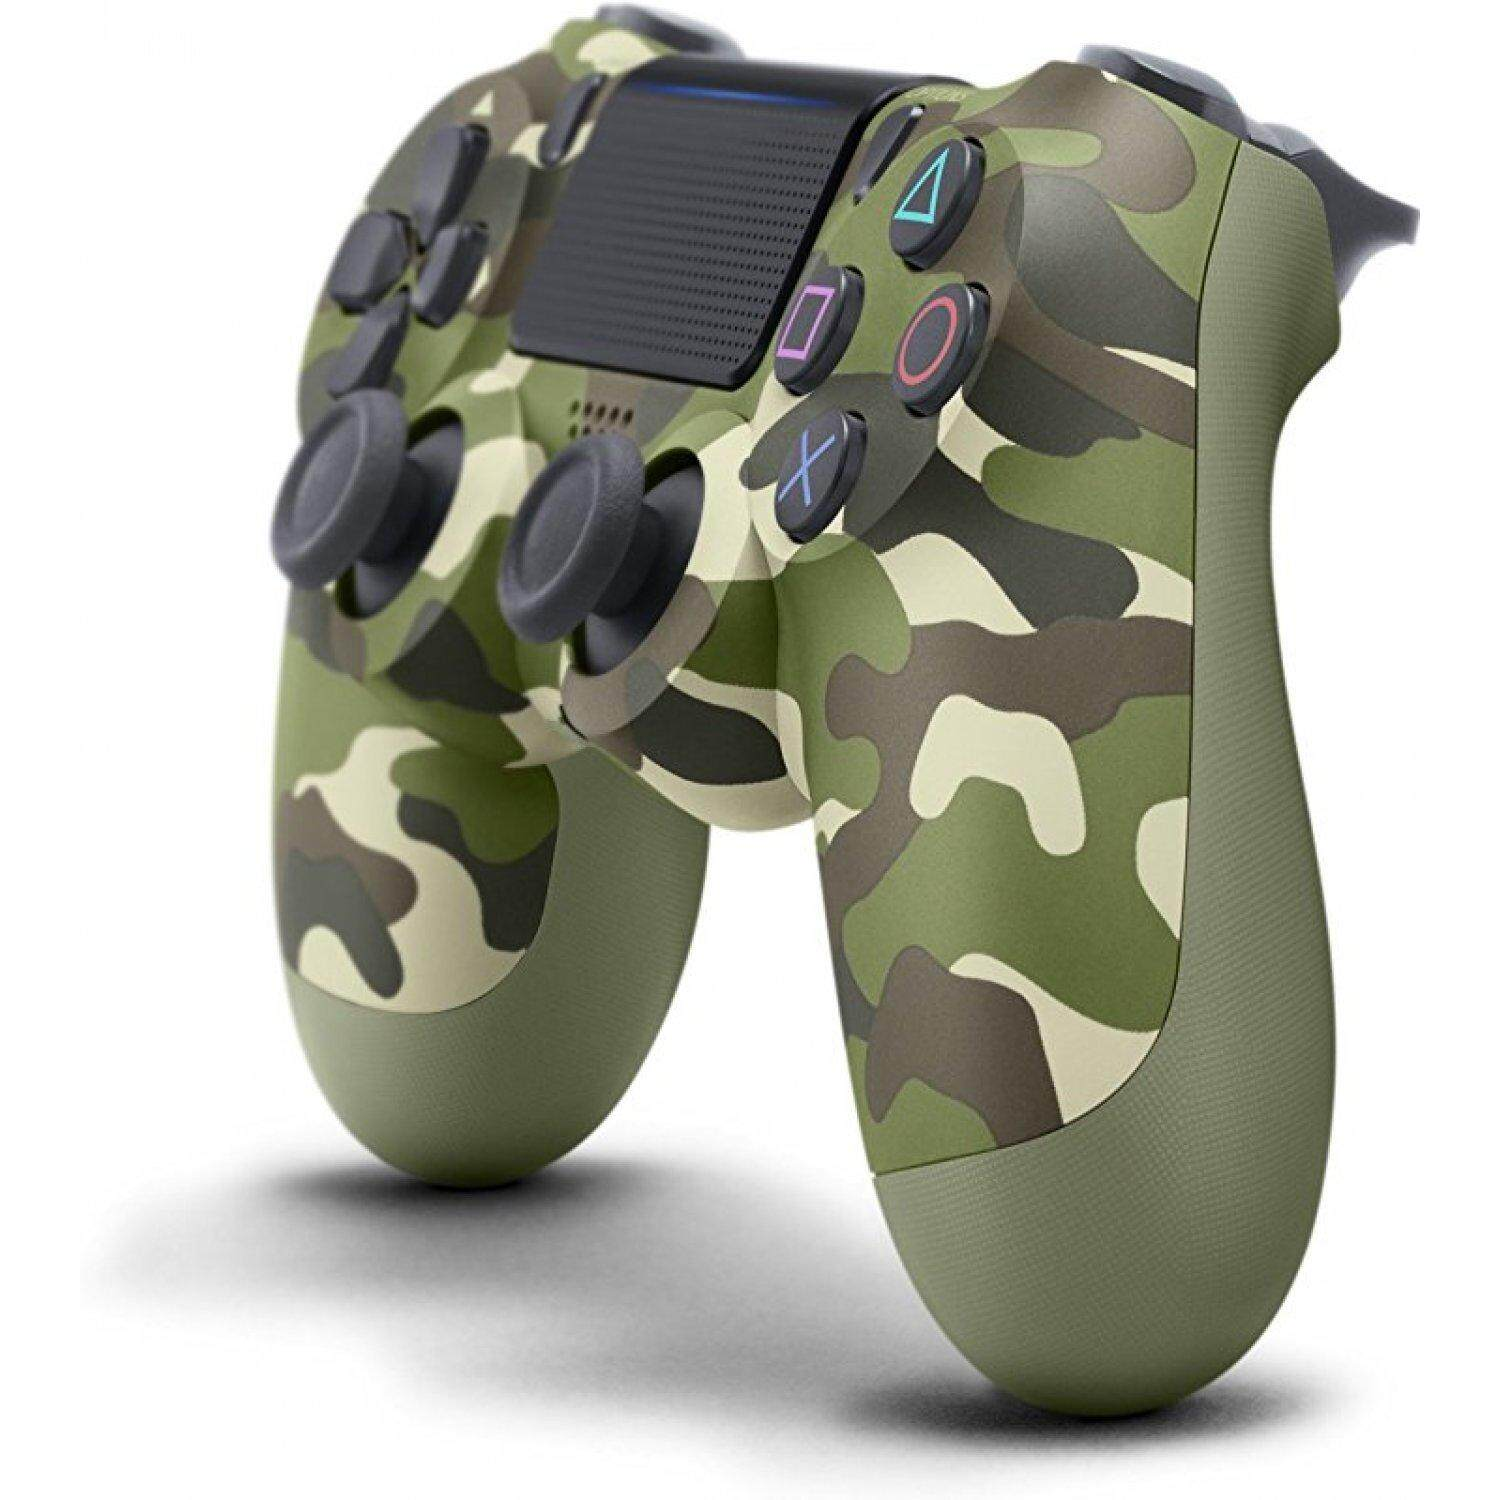 Kios Sony Playstation 4 Slim Console Cuh 2006b Ps4 Player 1tb 500gb 2006a Controller Dualshock Green Camouflage Colour Zct2g Gc Original